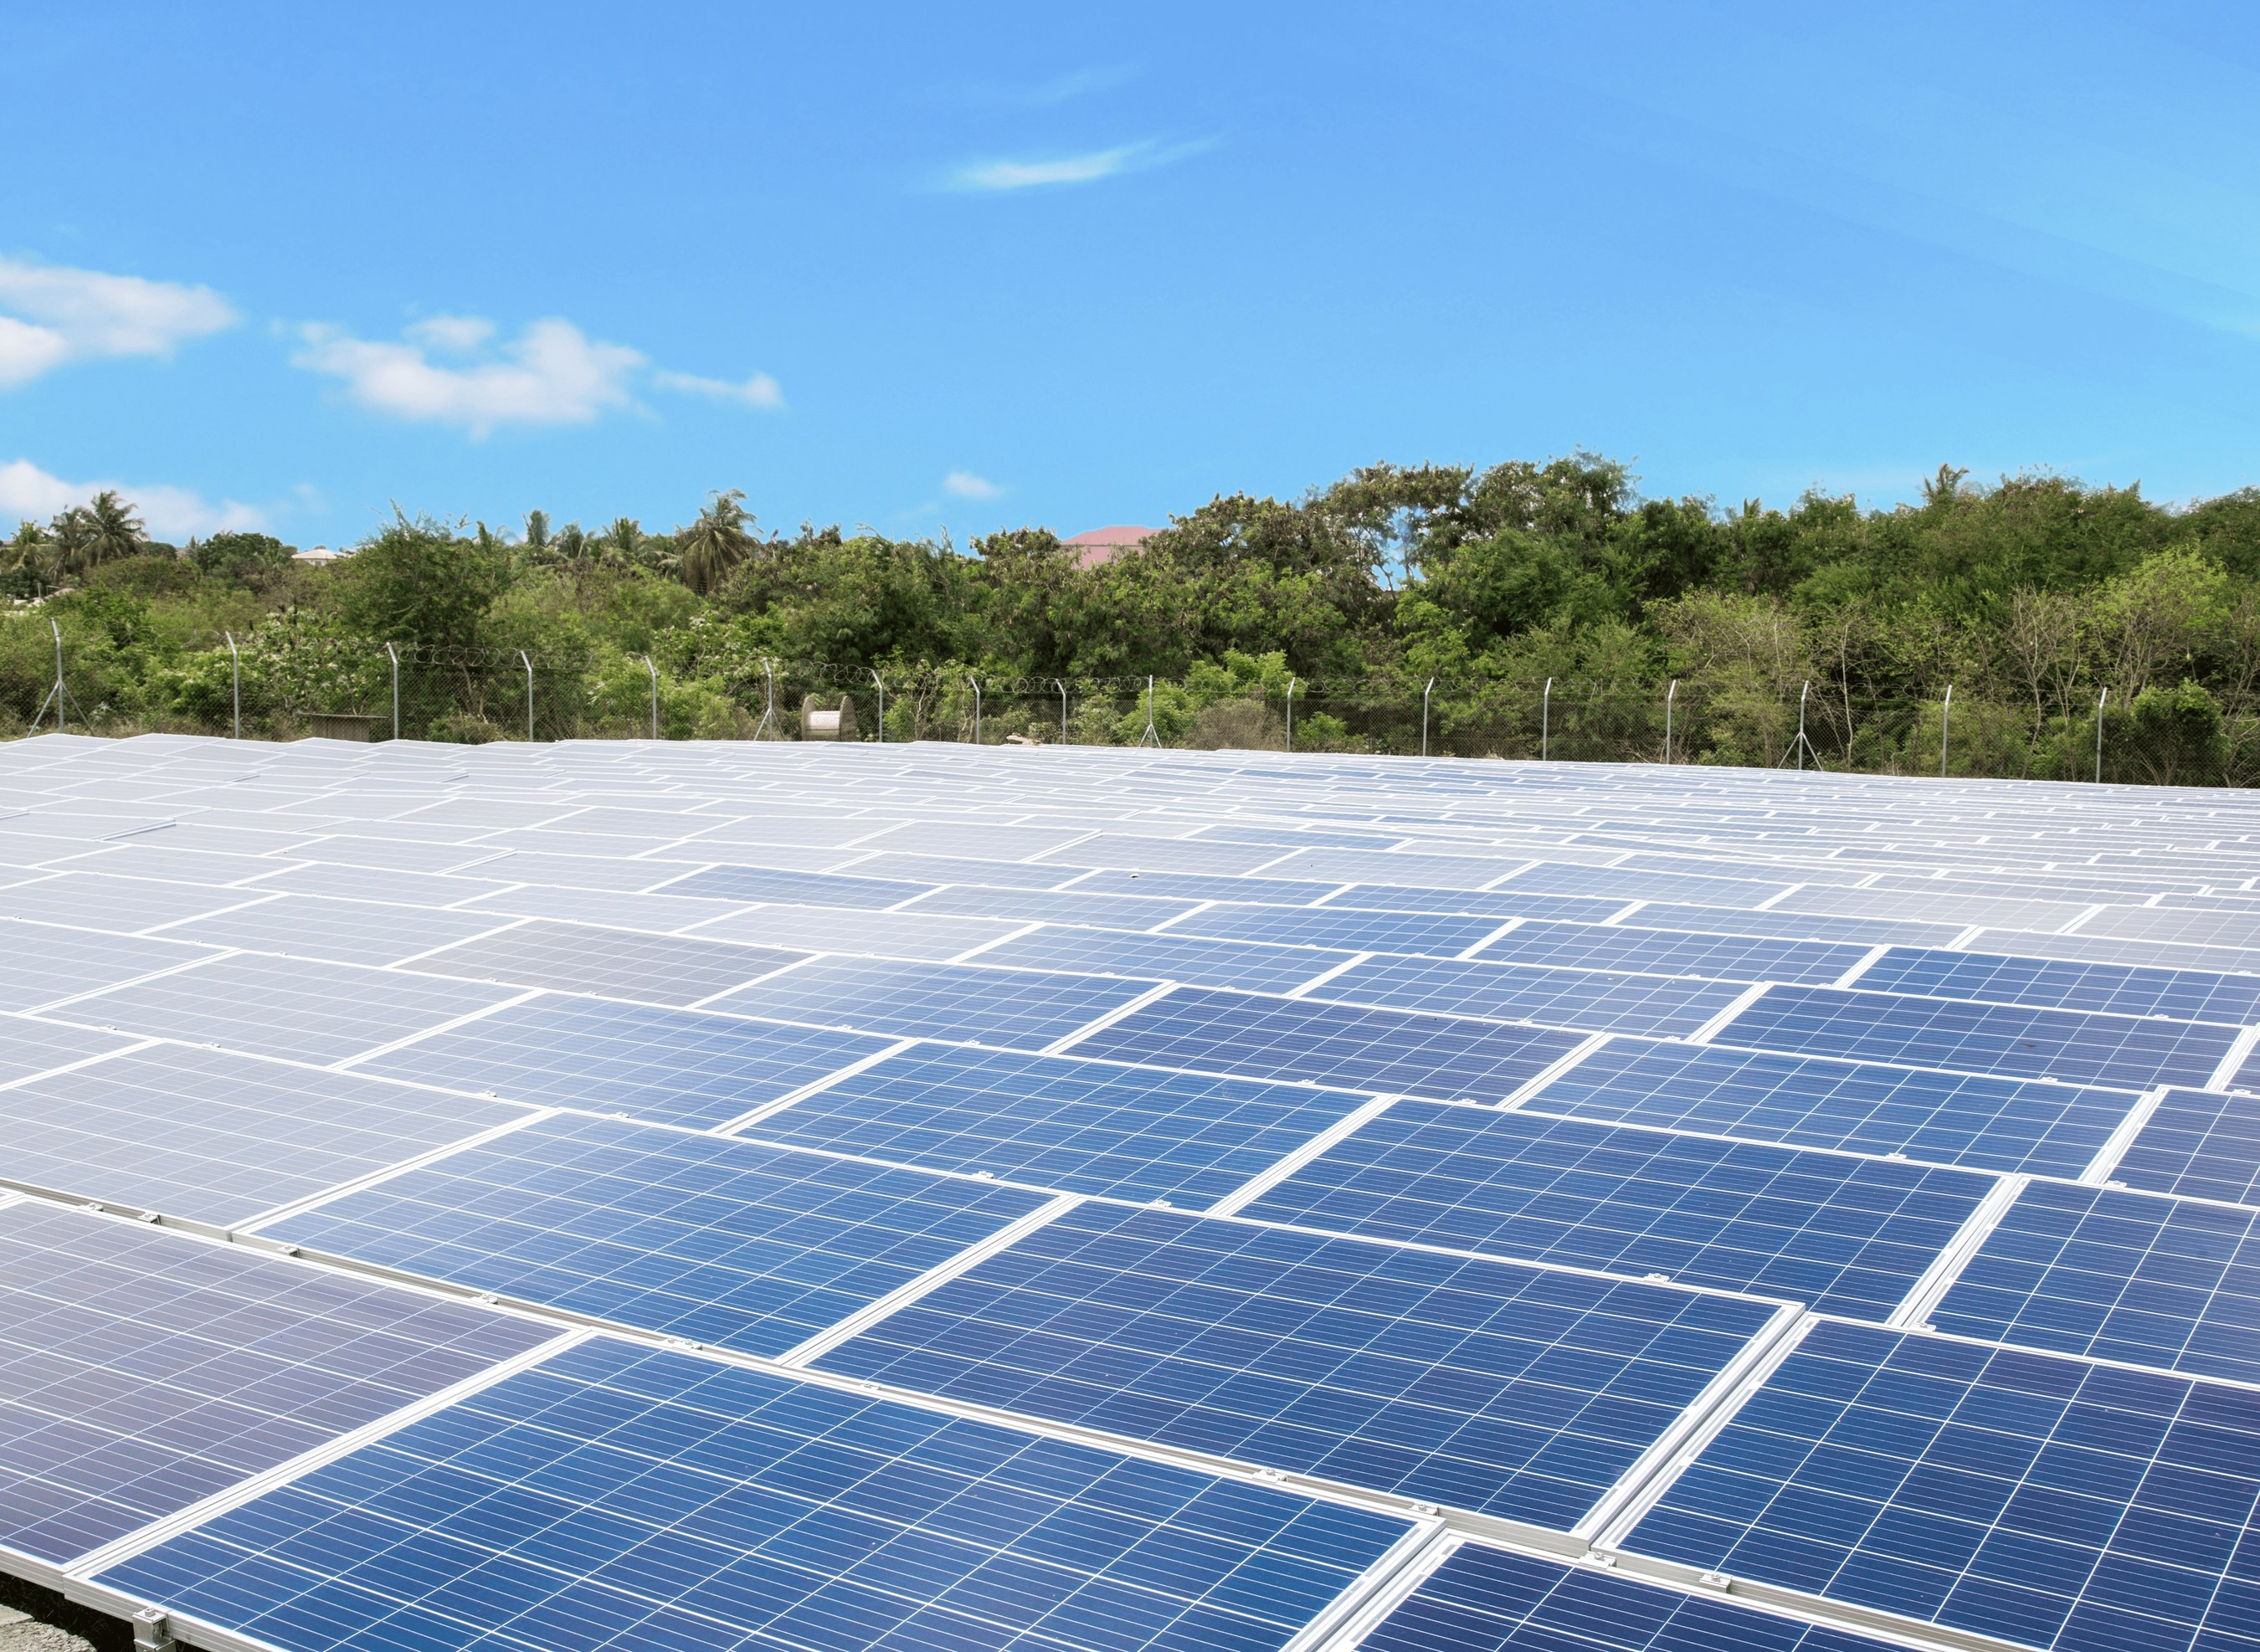 ElectriFI supports solar tech company REDAVIA's expansion in Ghana